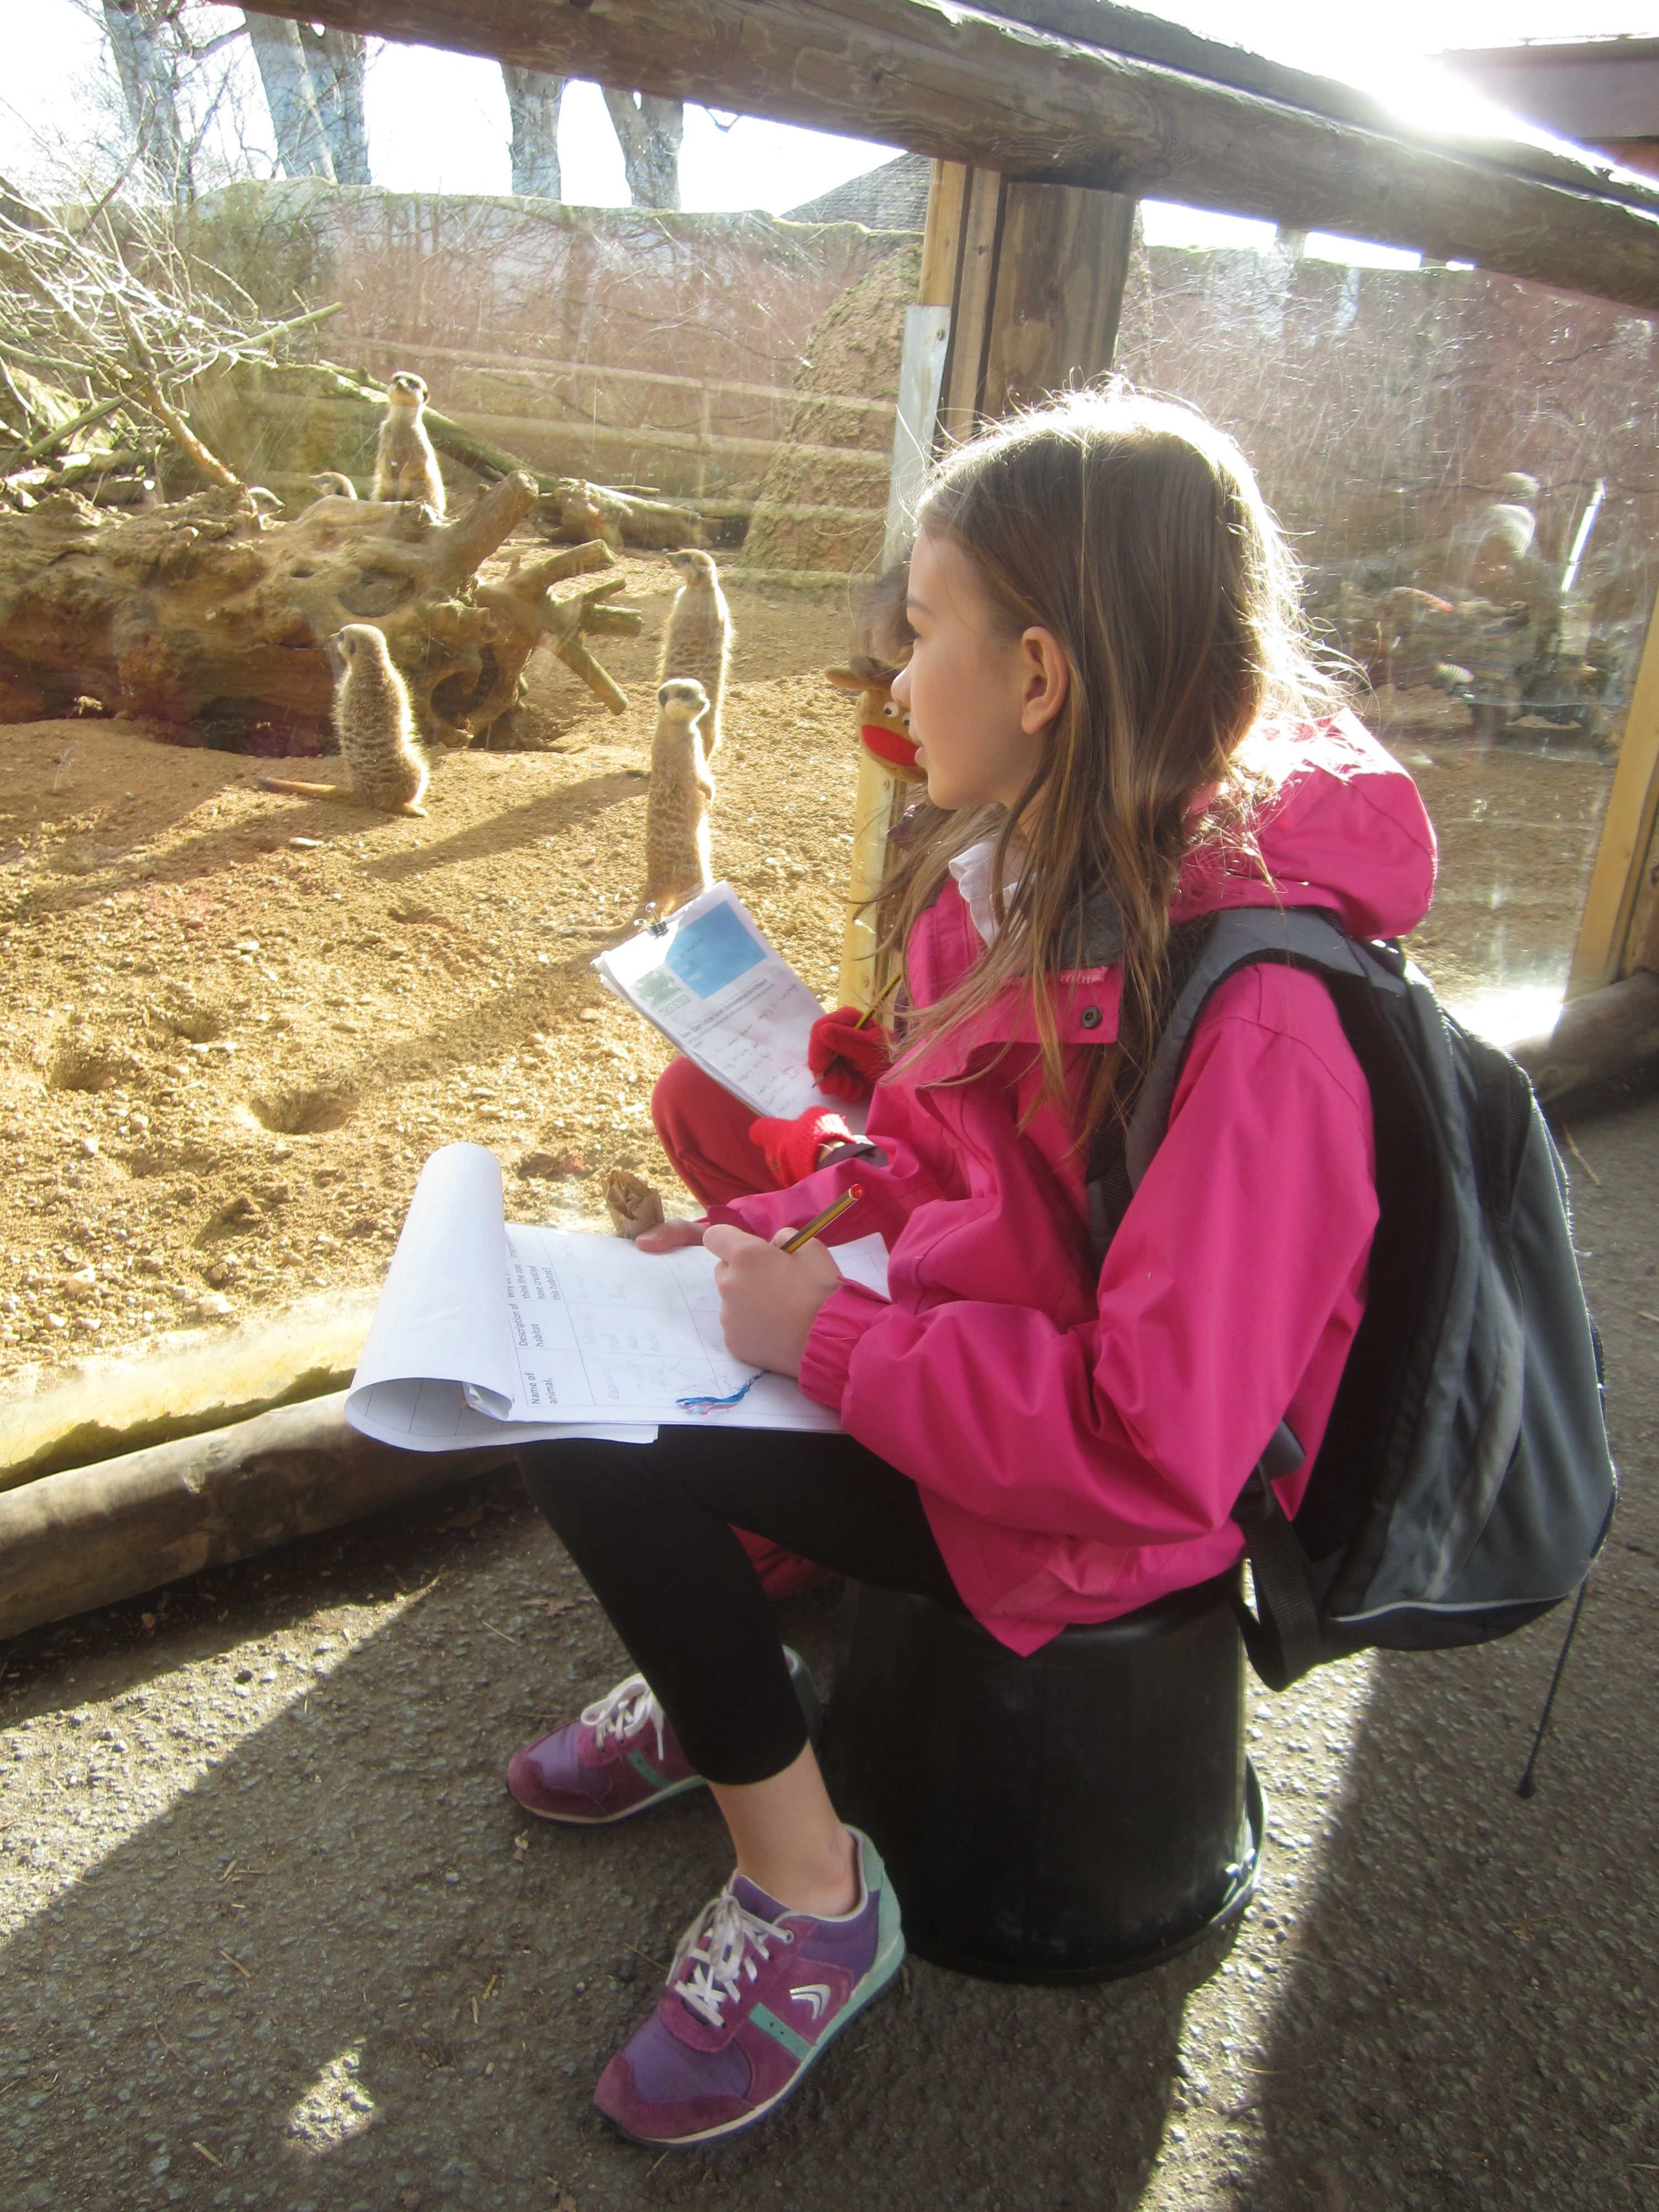 Bucket School at the zoo! Observing animals and designing environmental enrichment for the enclosures.